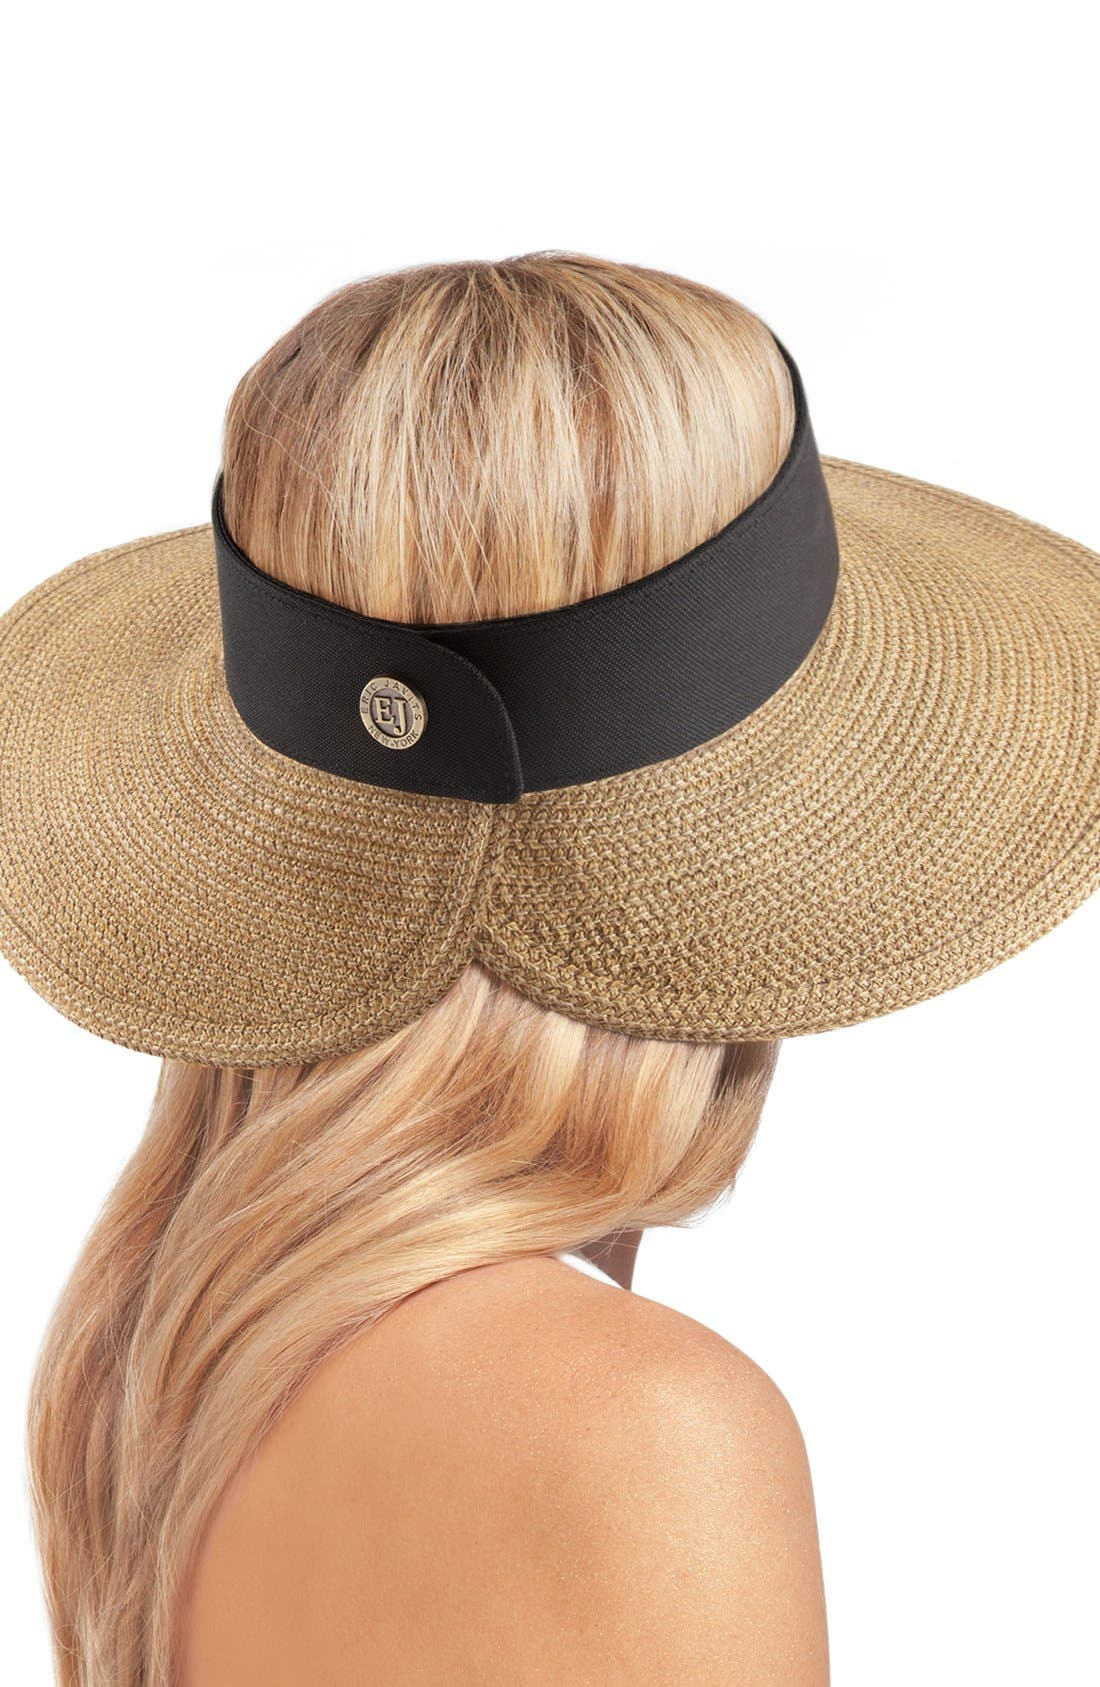 'Squishee<sup>®</sup> Halo' Hat,                             Alternate thumbnail 3, color,                             NATURAL/ BLACK